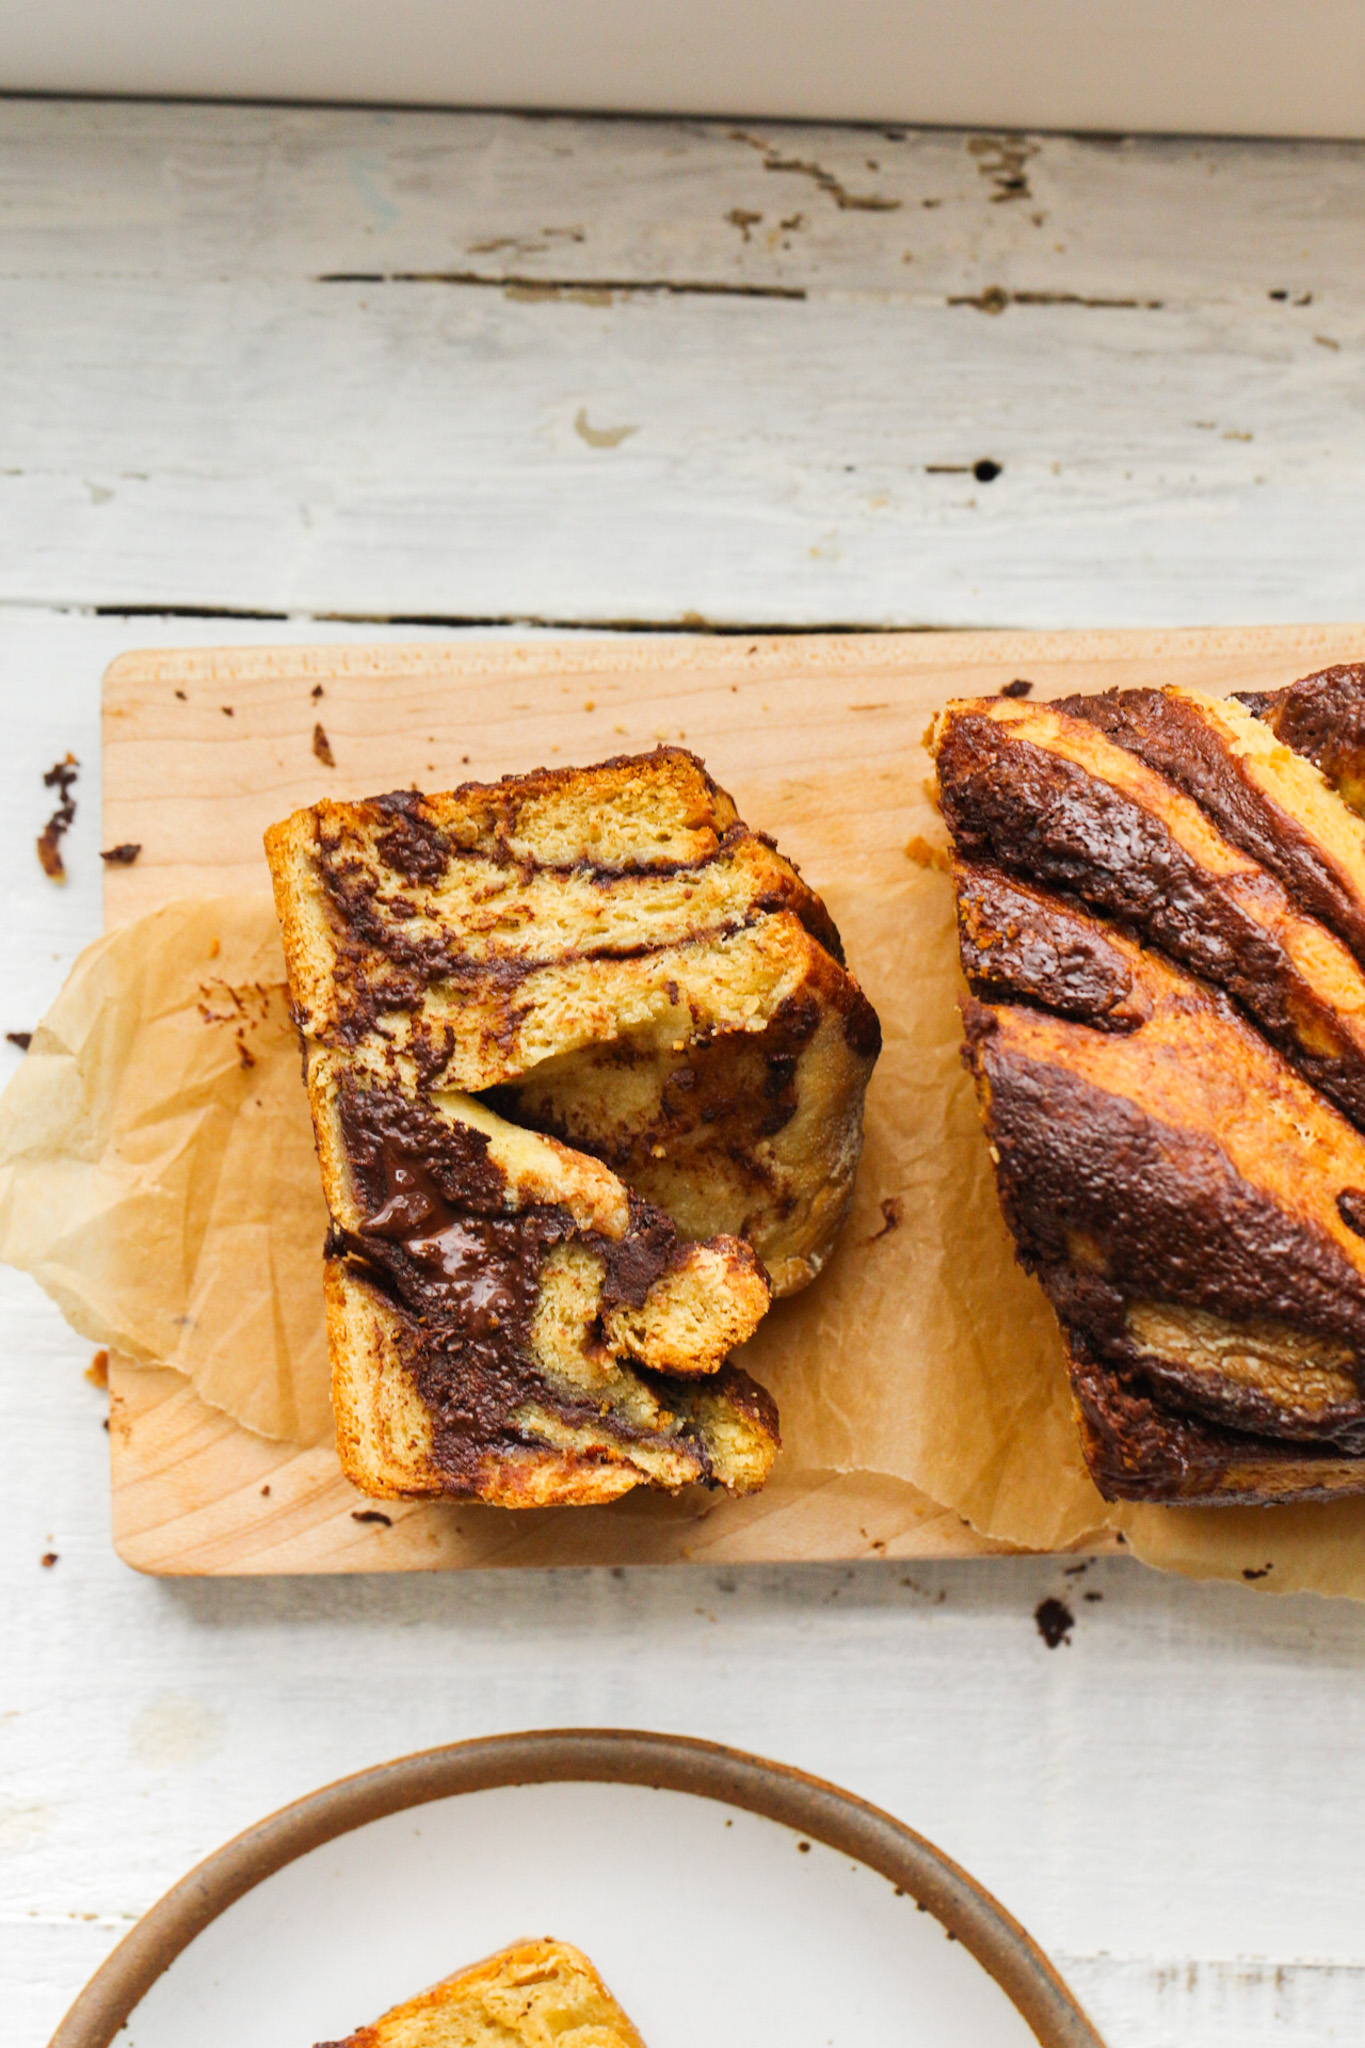 chocolate babka sliced from loaf